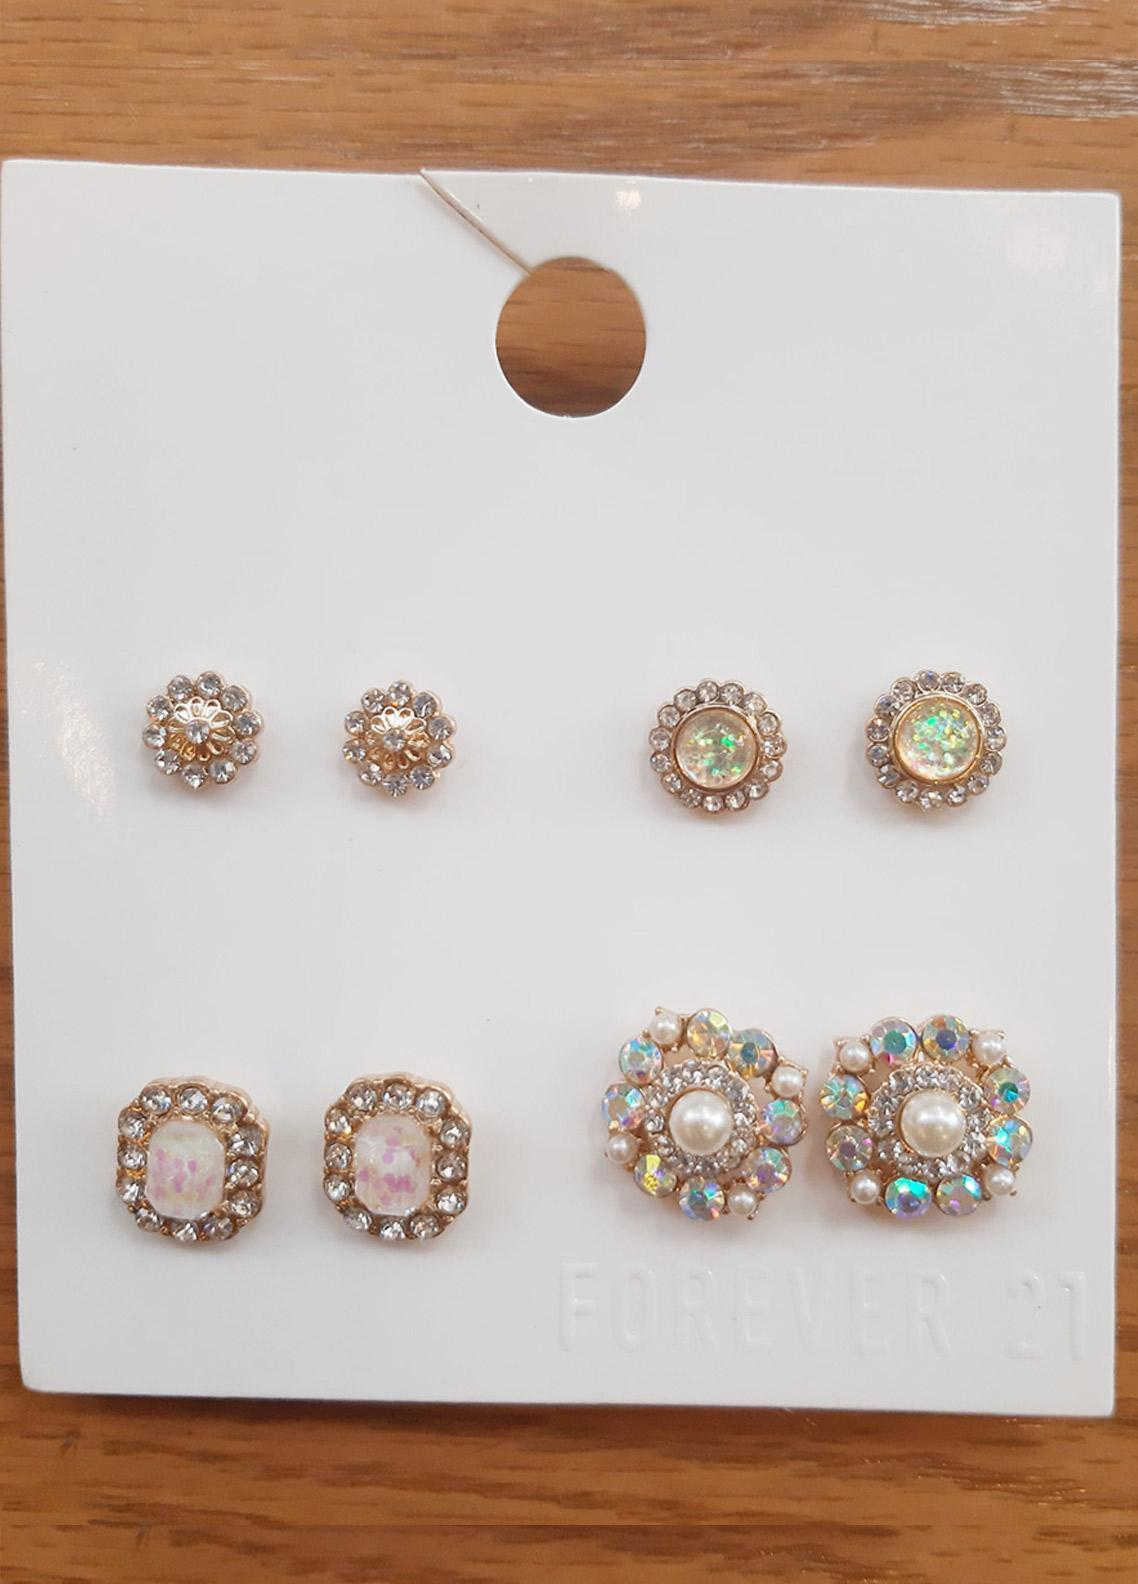 Forever21 Etched & Floral Stud Earring Set  - Ladies Jewellery